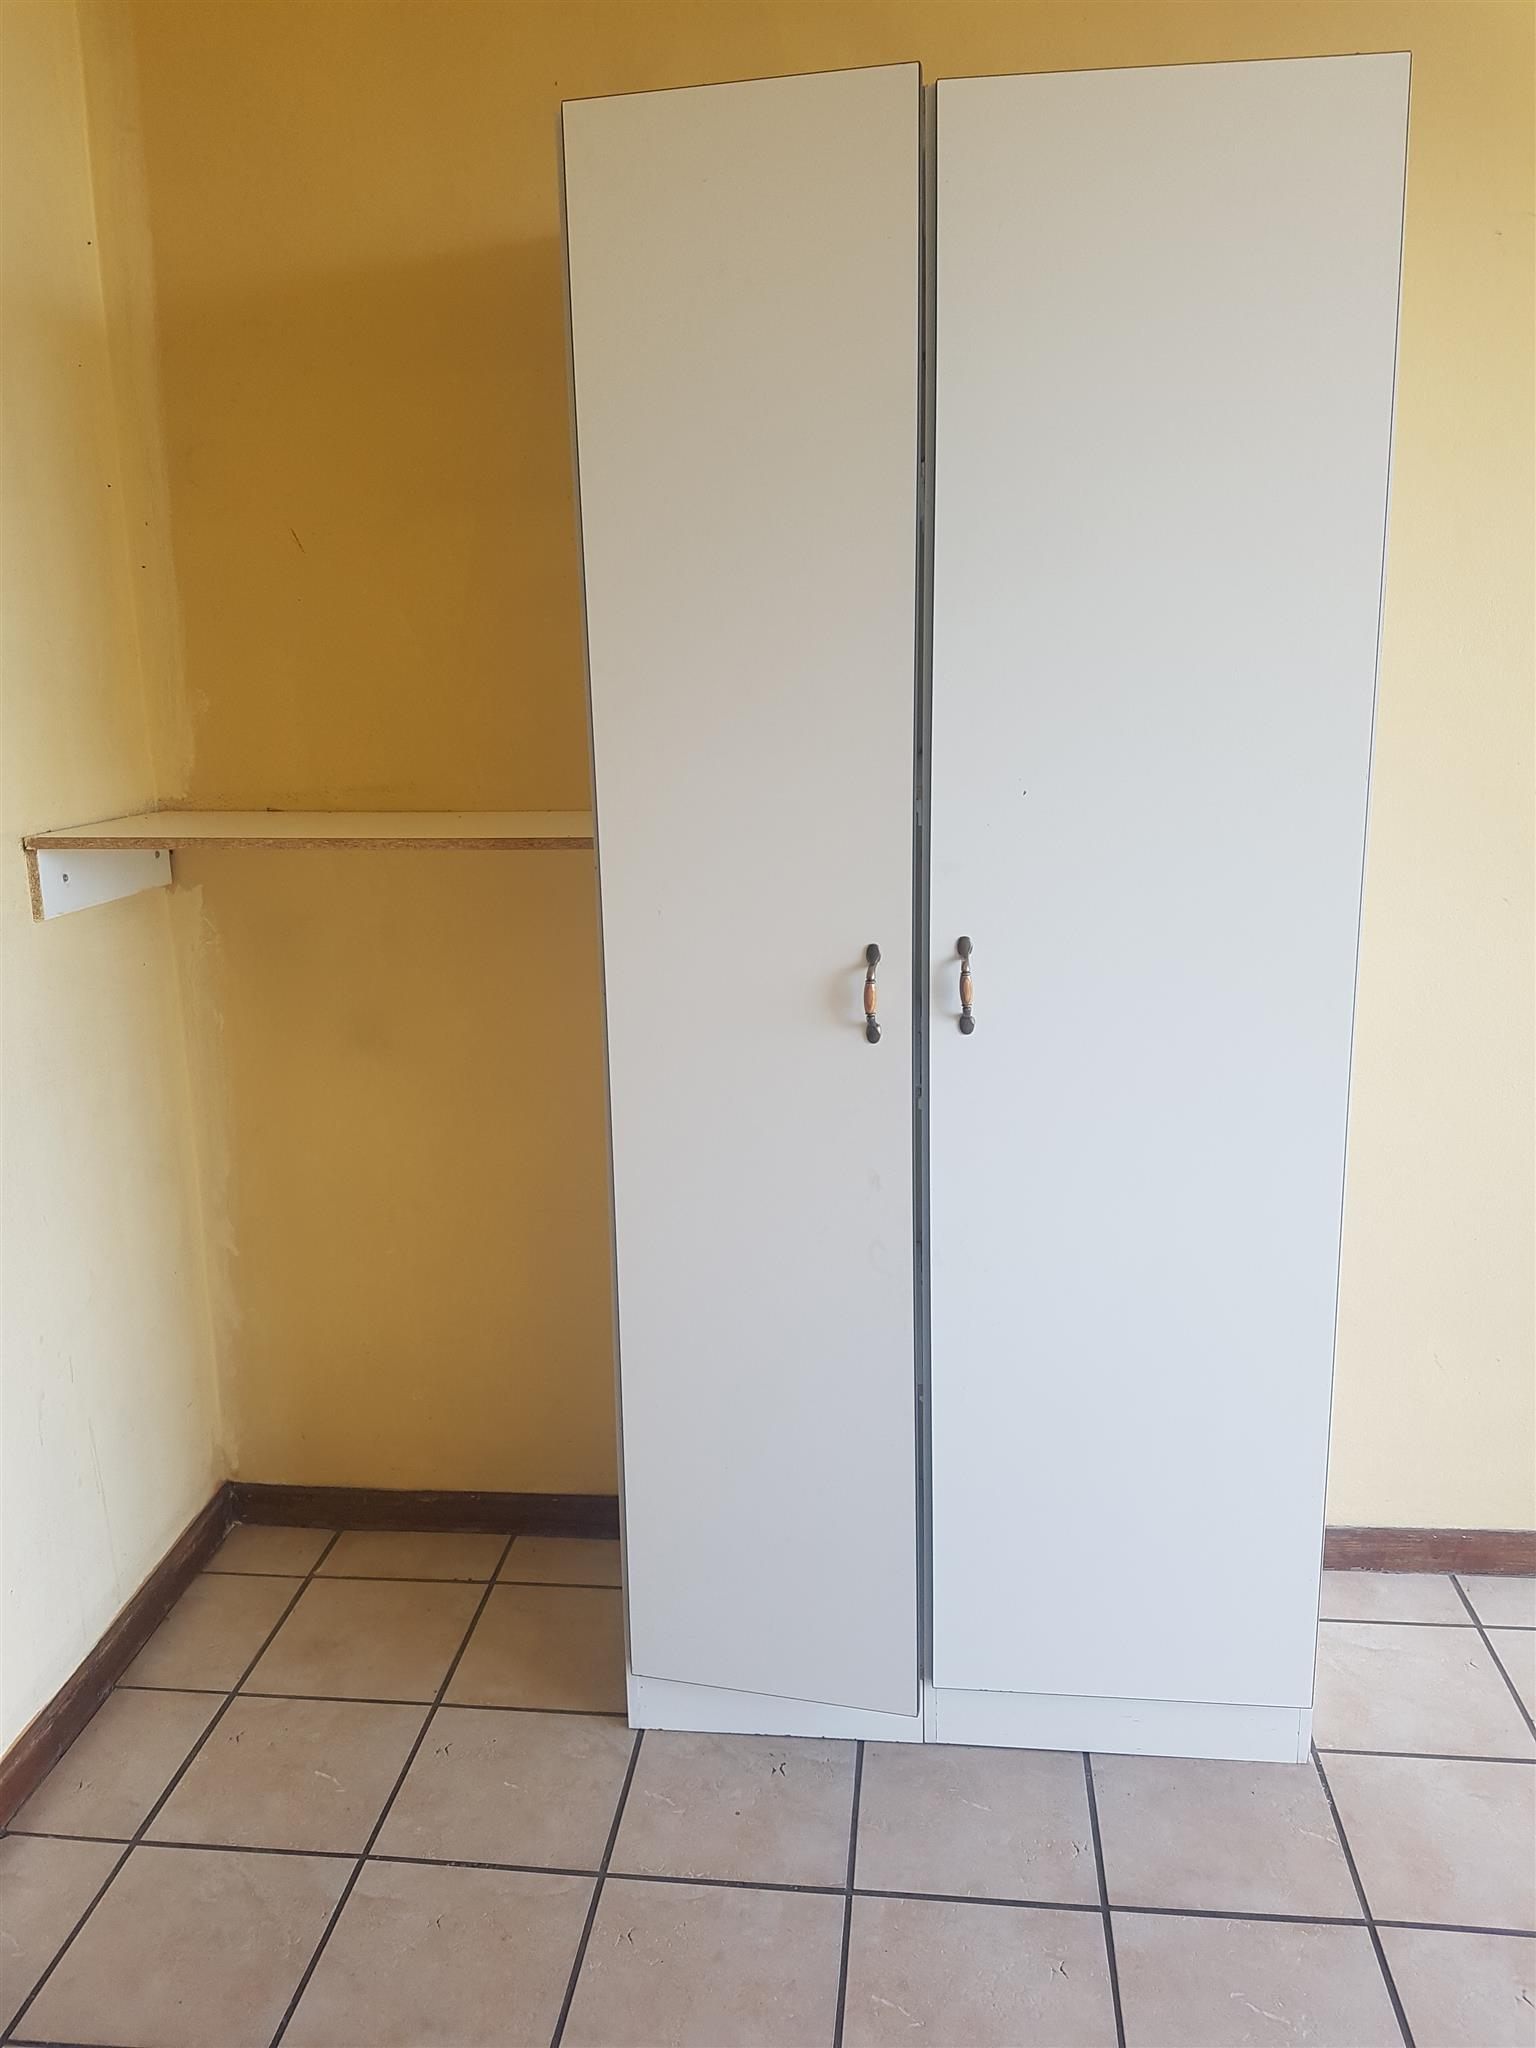 Sunnyside rooms to rent from R1330-R1754 five rooms in a flat shared communal facilities secure block